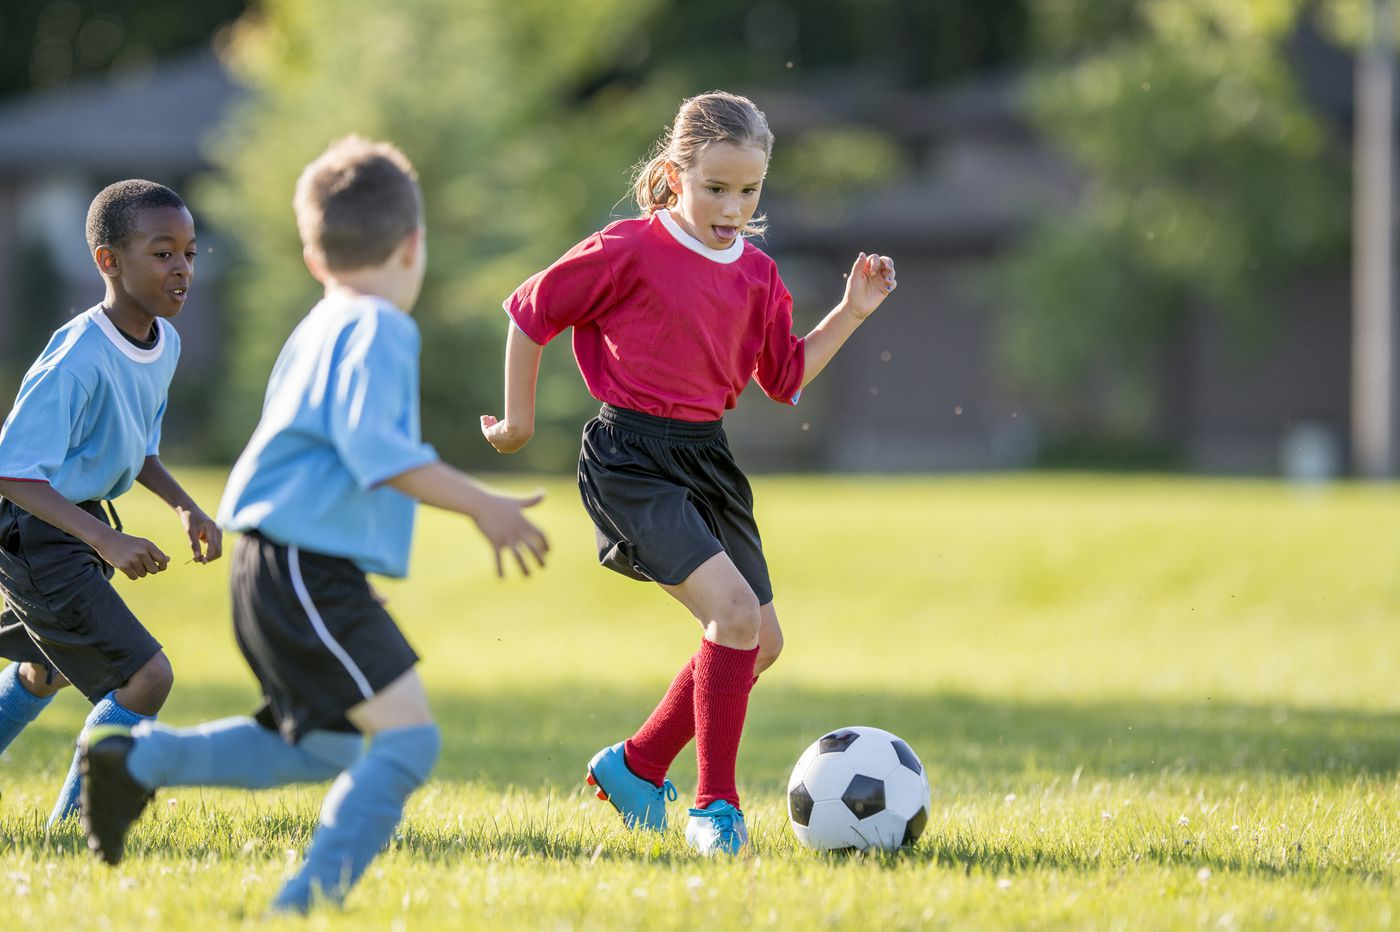 5 tips for helping your family ease into fall activities, sports